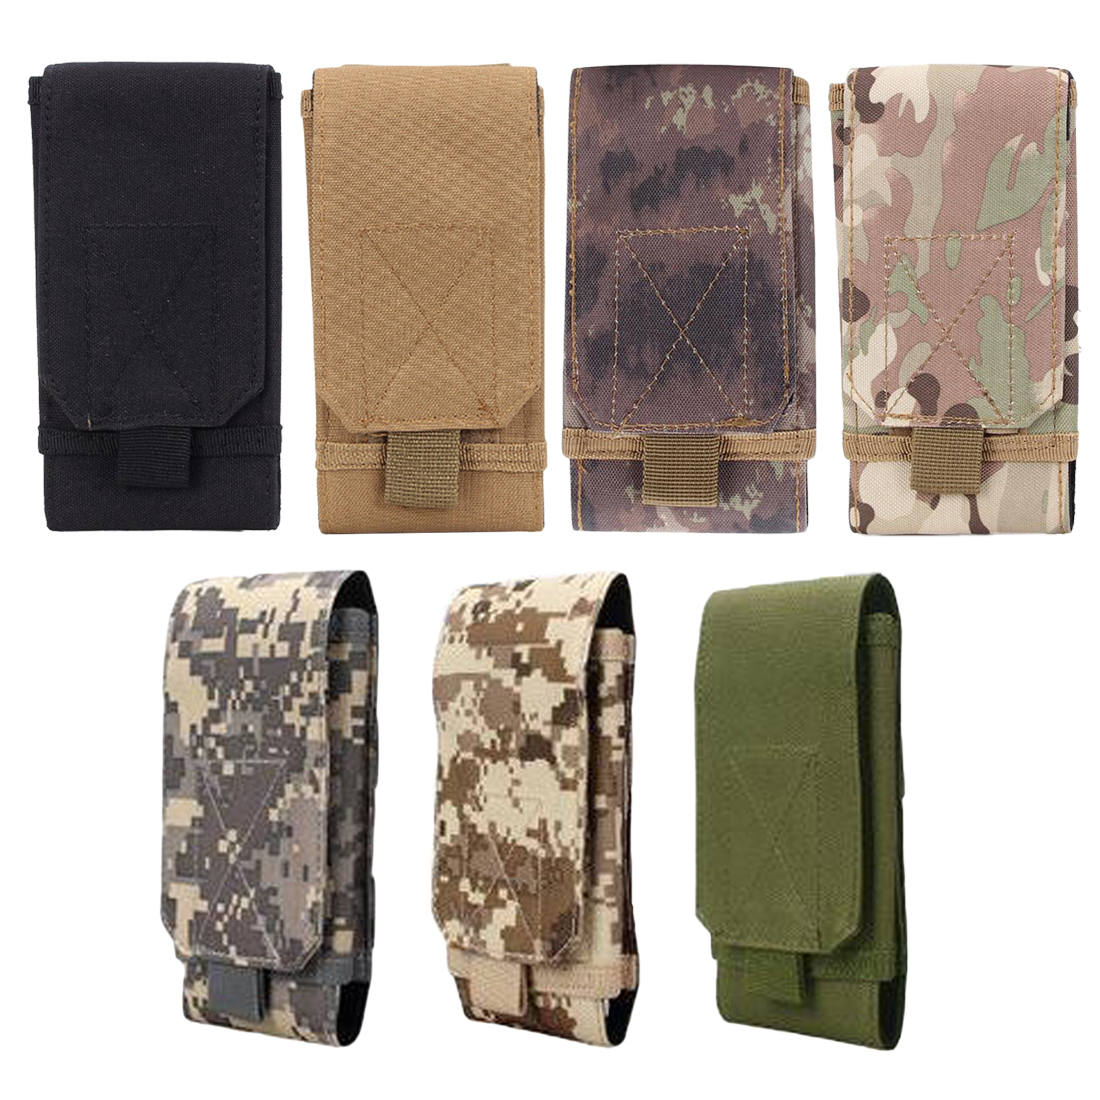 New 6 Inches Tactical Holster MOLLE Army Camo Camouflage Bag Hook Loop Belt Pouch Holster Cover Case For The Mobile Phone Case